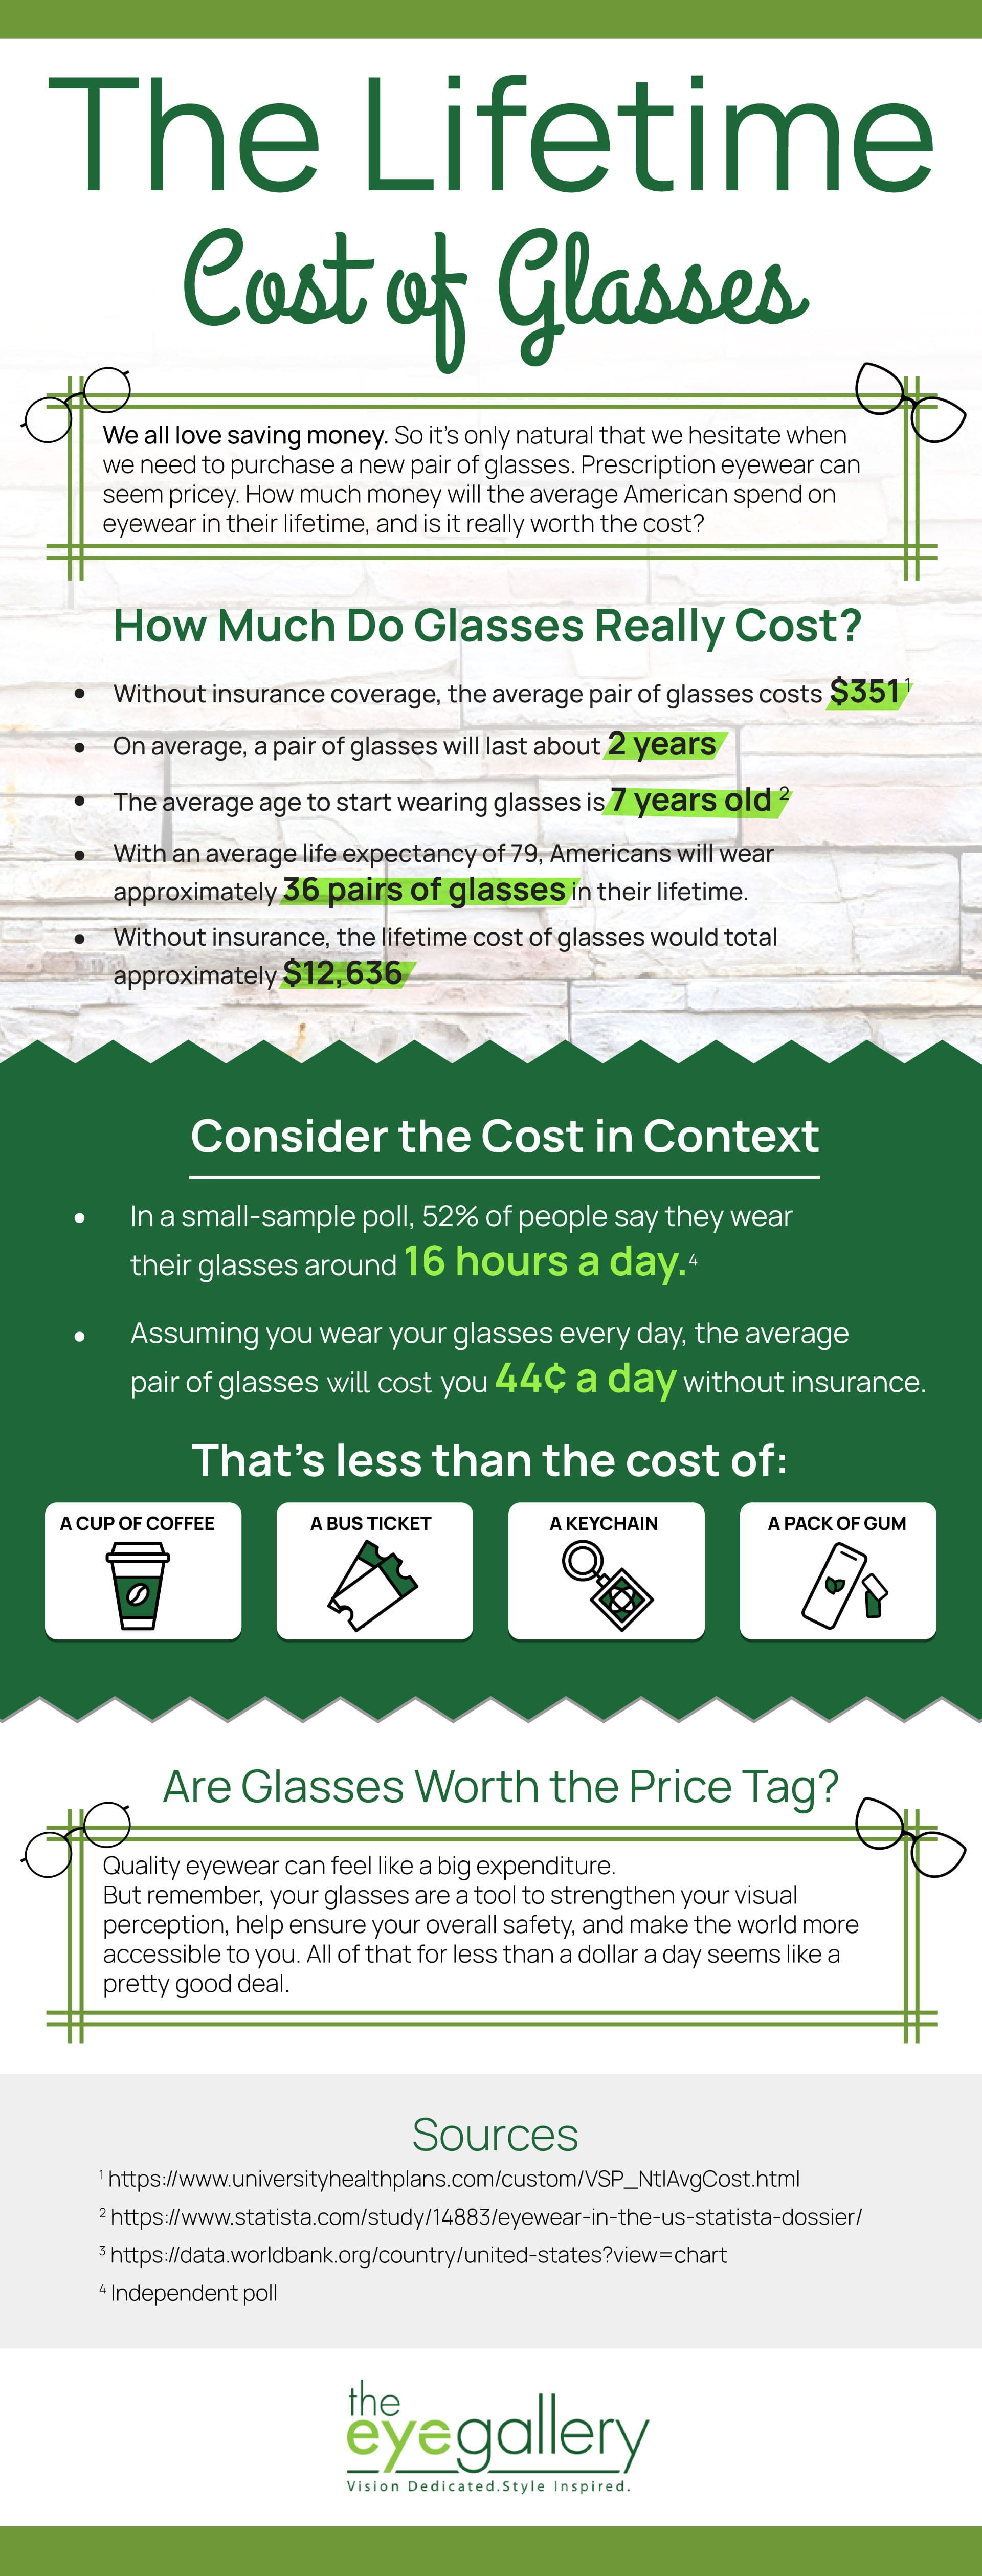 Long infographic breaking down the daily cost of eyeglasses